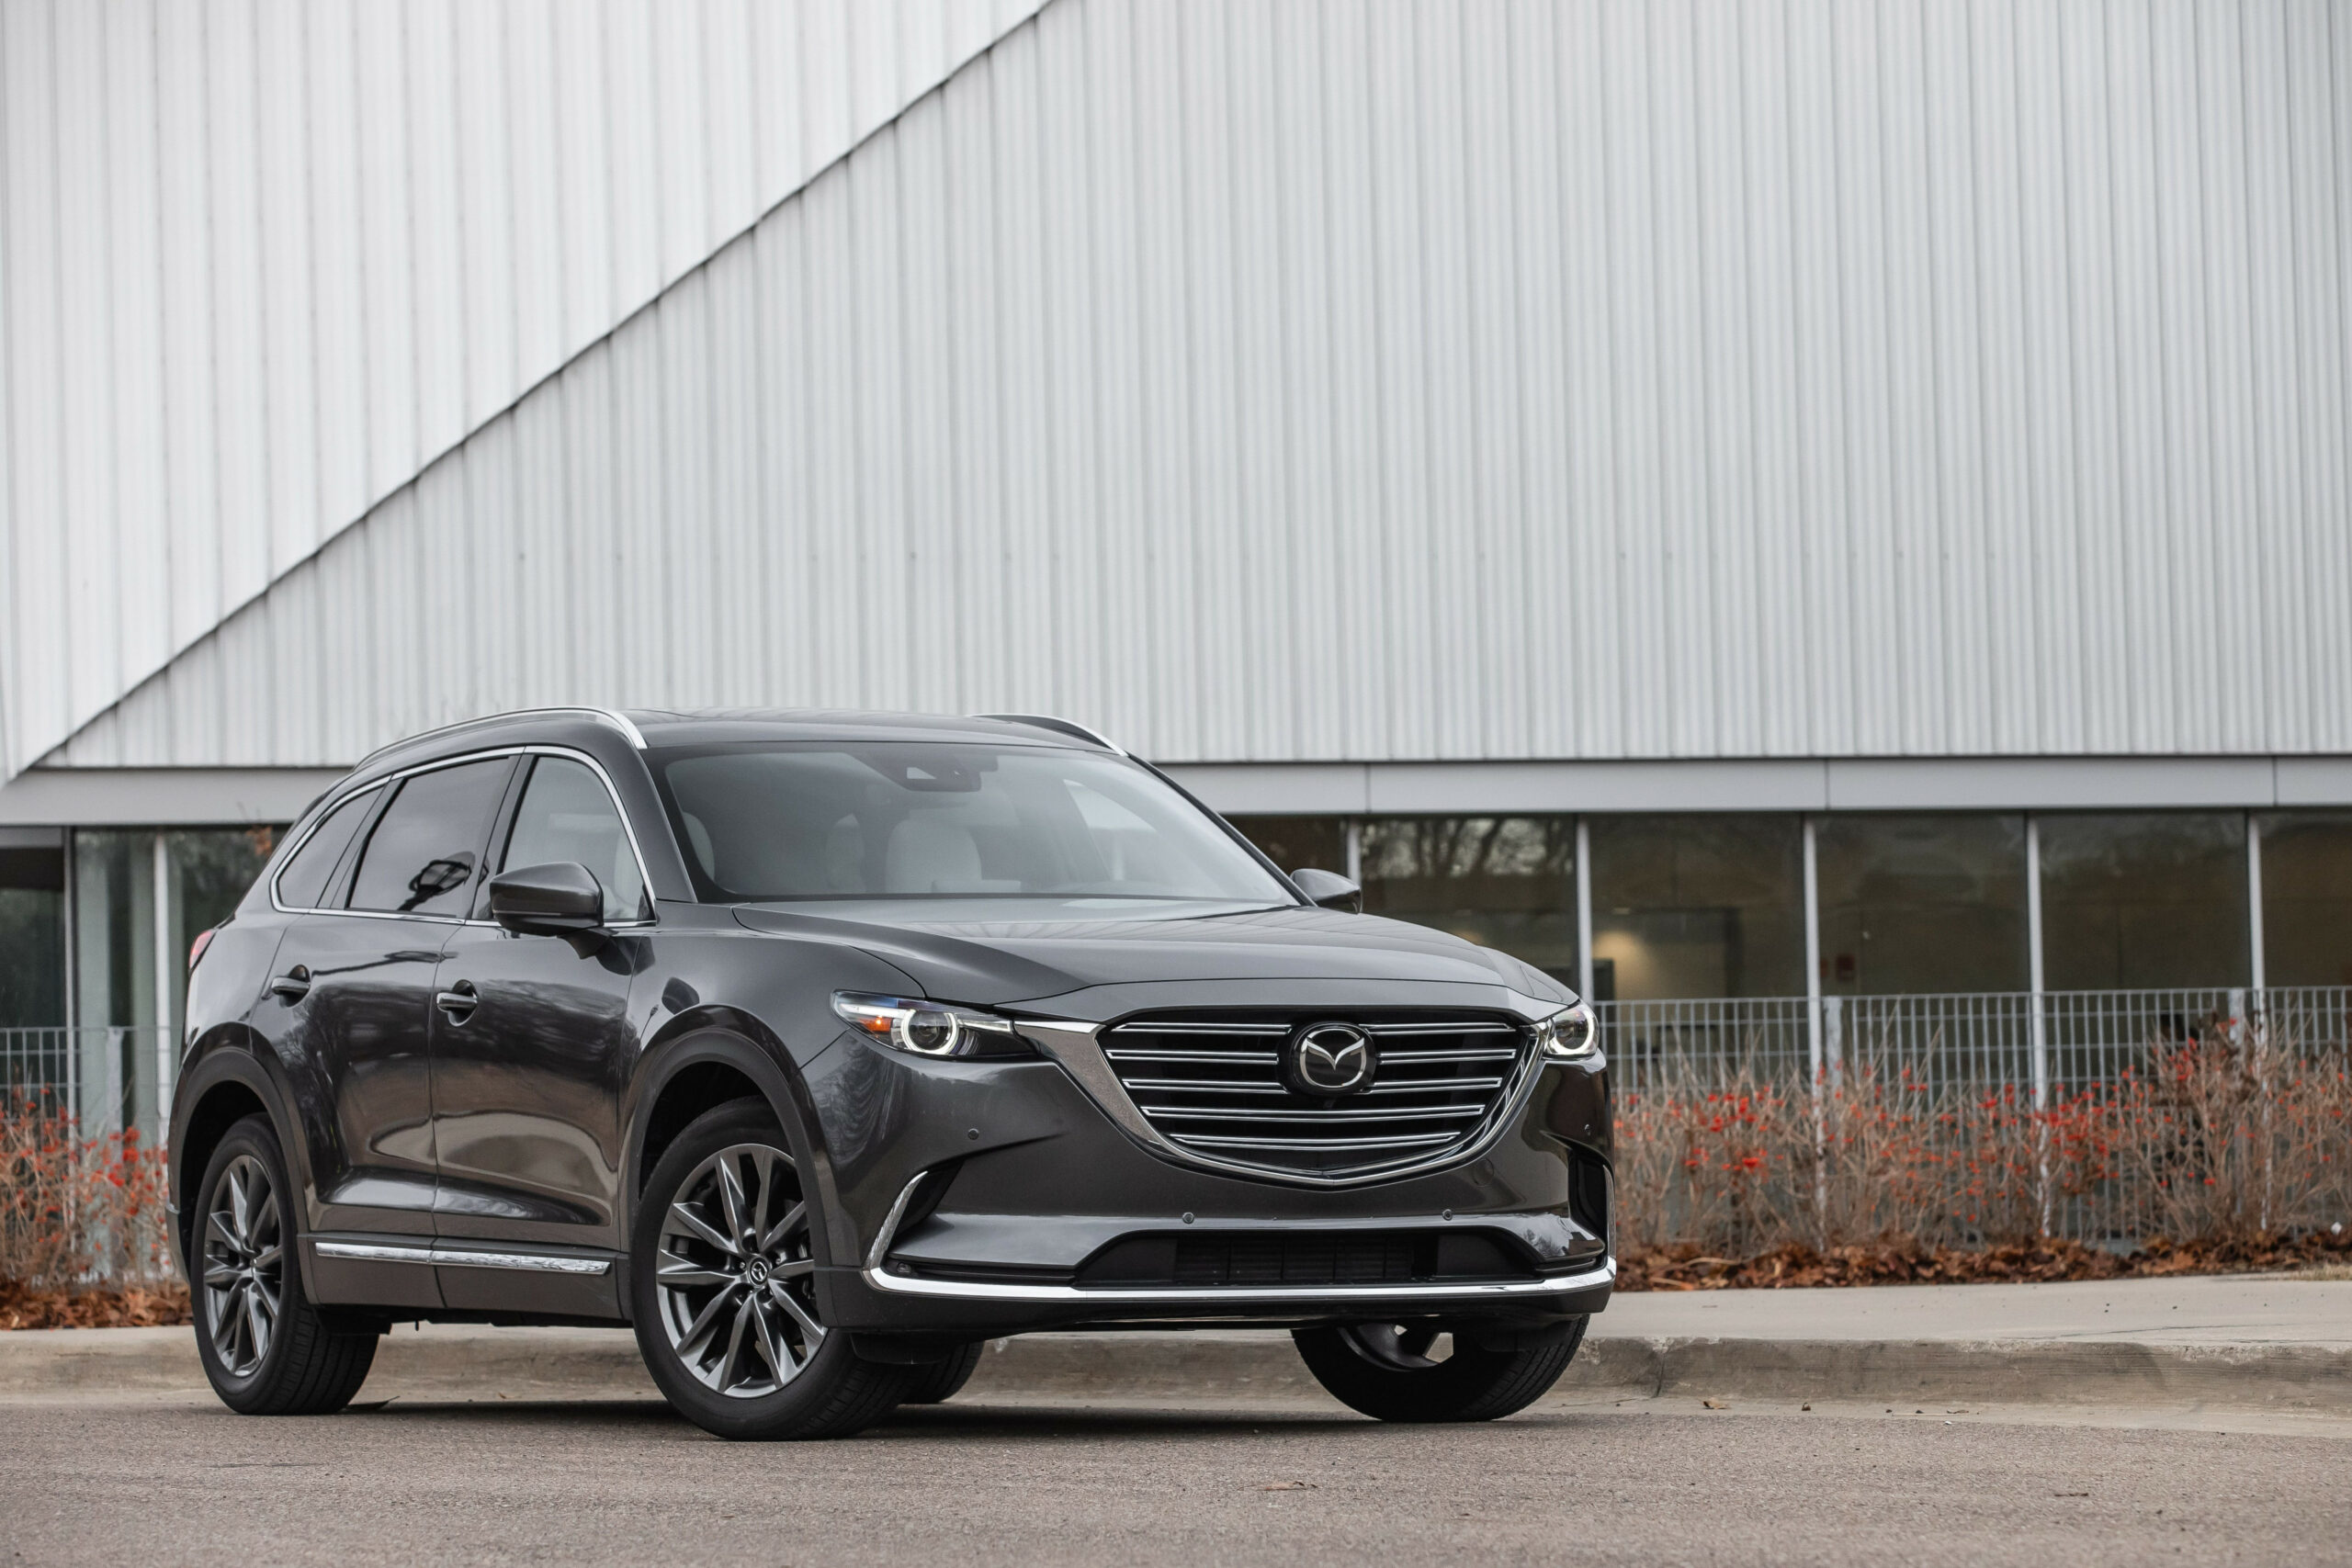 8 Mazda CX-8 Review, Pricing, and Specs